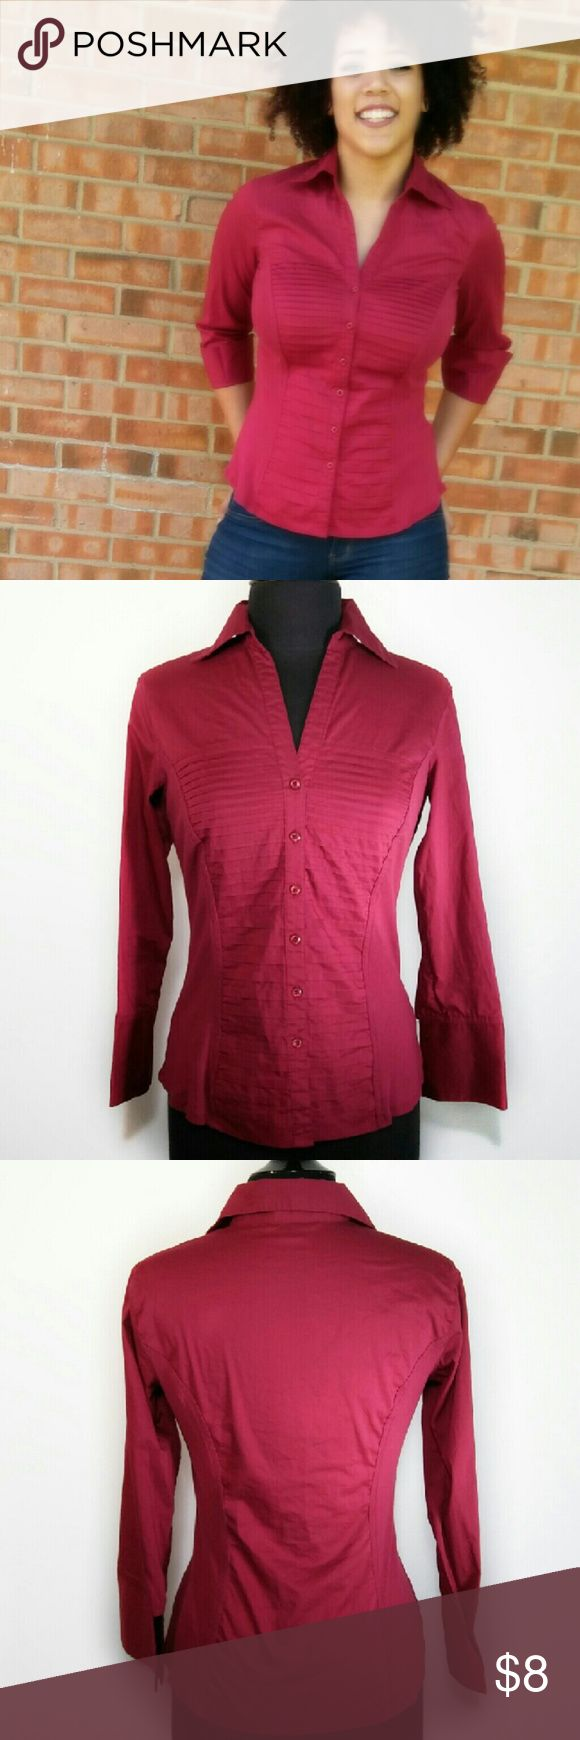 Red Military Style Button-up Blouse Military style top has several unique design features: pleated front, jersey sides (gives it a fitted silhouette) and three quarter sleeves with wide cuffs. Blouse is true red, 68% cotton, 27% polyester, 5% spandex. Excellent used condition! Tops Blouses